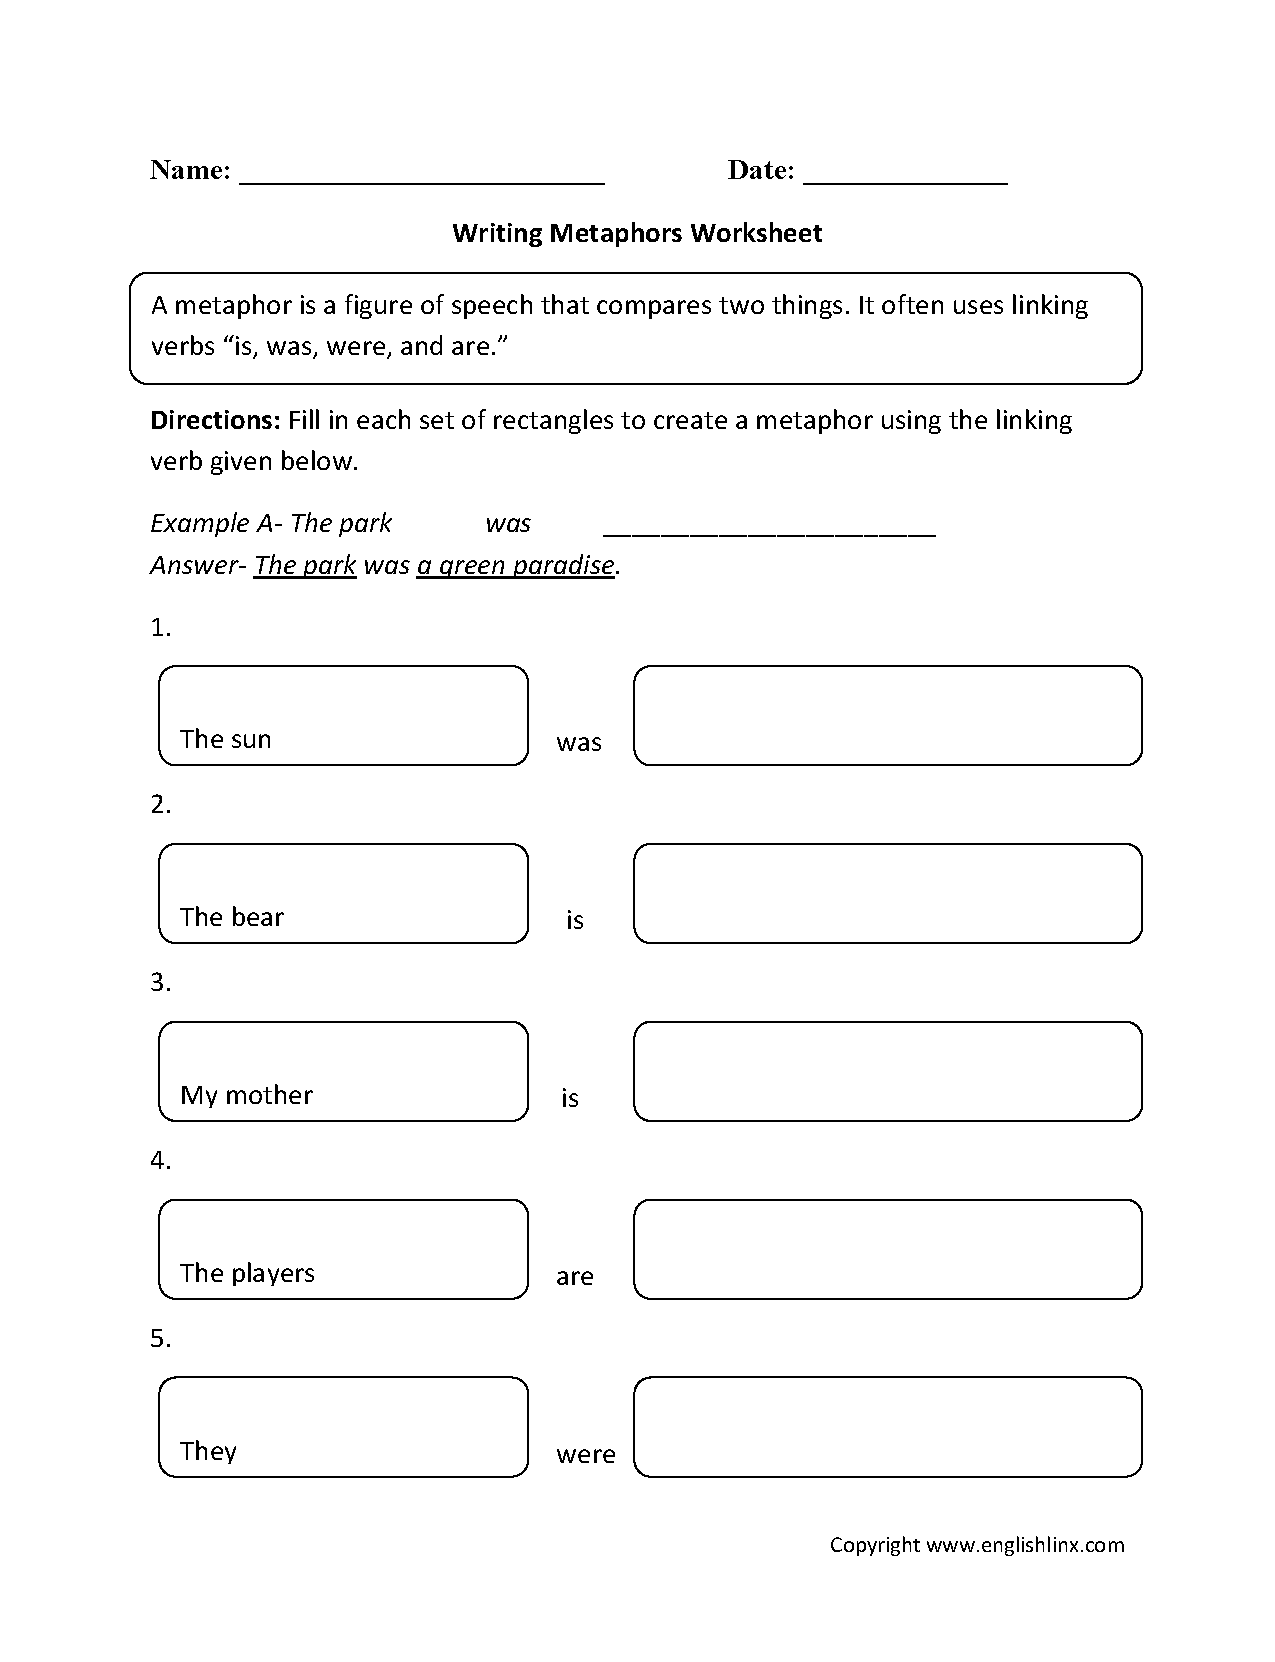 Aldiablosus  Stunning Englishlinxcom  Metaphors Worksheets With Marvelous Worksheet With Endearing Noun And Adjective Worksheet Also Simplifying Algebraic Expressions With Exponents Worksheets In Addition  Digits Multiplication Worksheets And Th Grade Sentence Structure Worksheets As Well As Free Worksheets Nd Grade Additionally Printable Worksheets For Th Grade From Englishlinxcom With Aldiablosus  Marvelous Englishlinxcom  Metaphors Worksheets With Endearing Worksheet And Stunning Noun And Adjective Worksheet Also Simplifying Algebraic Expressions With Exponents Worksheets In Addition  Digits Multiplication Worksheets From Englishlinxcom